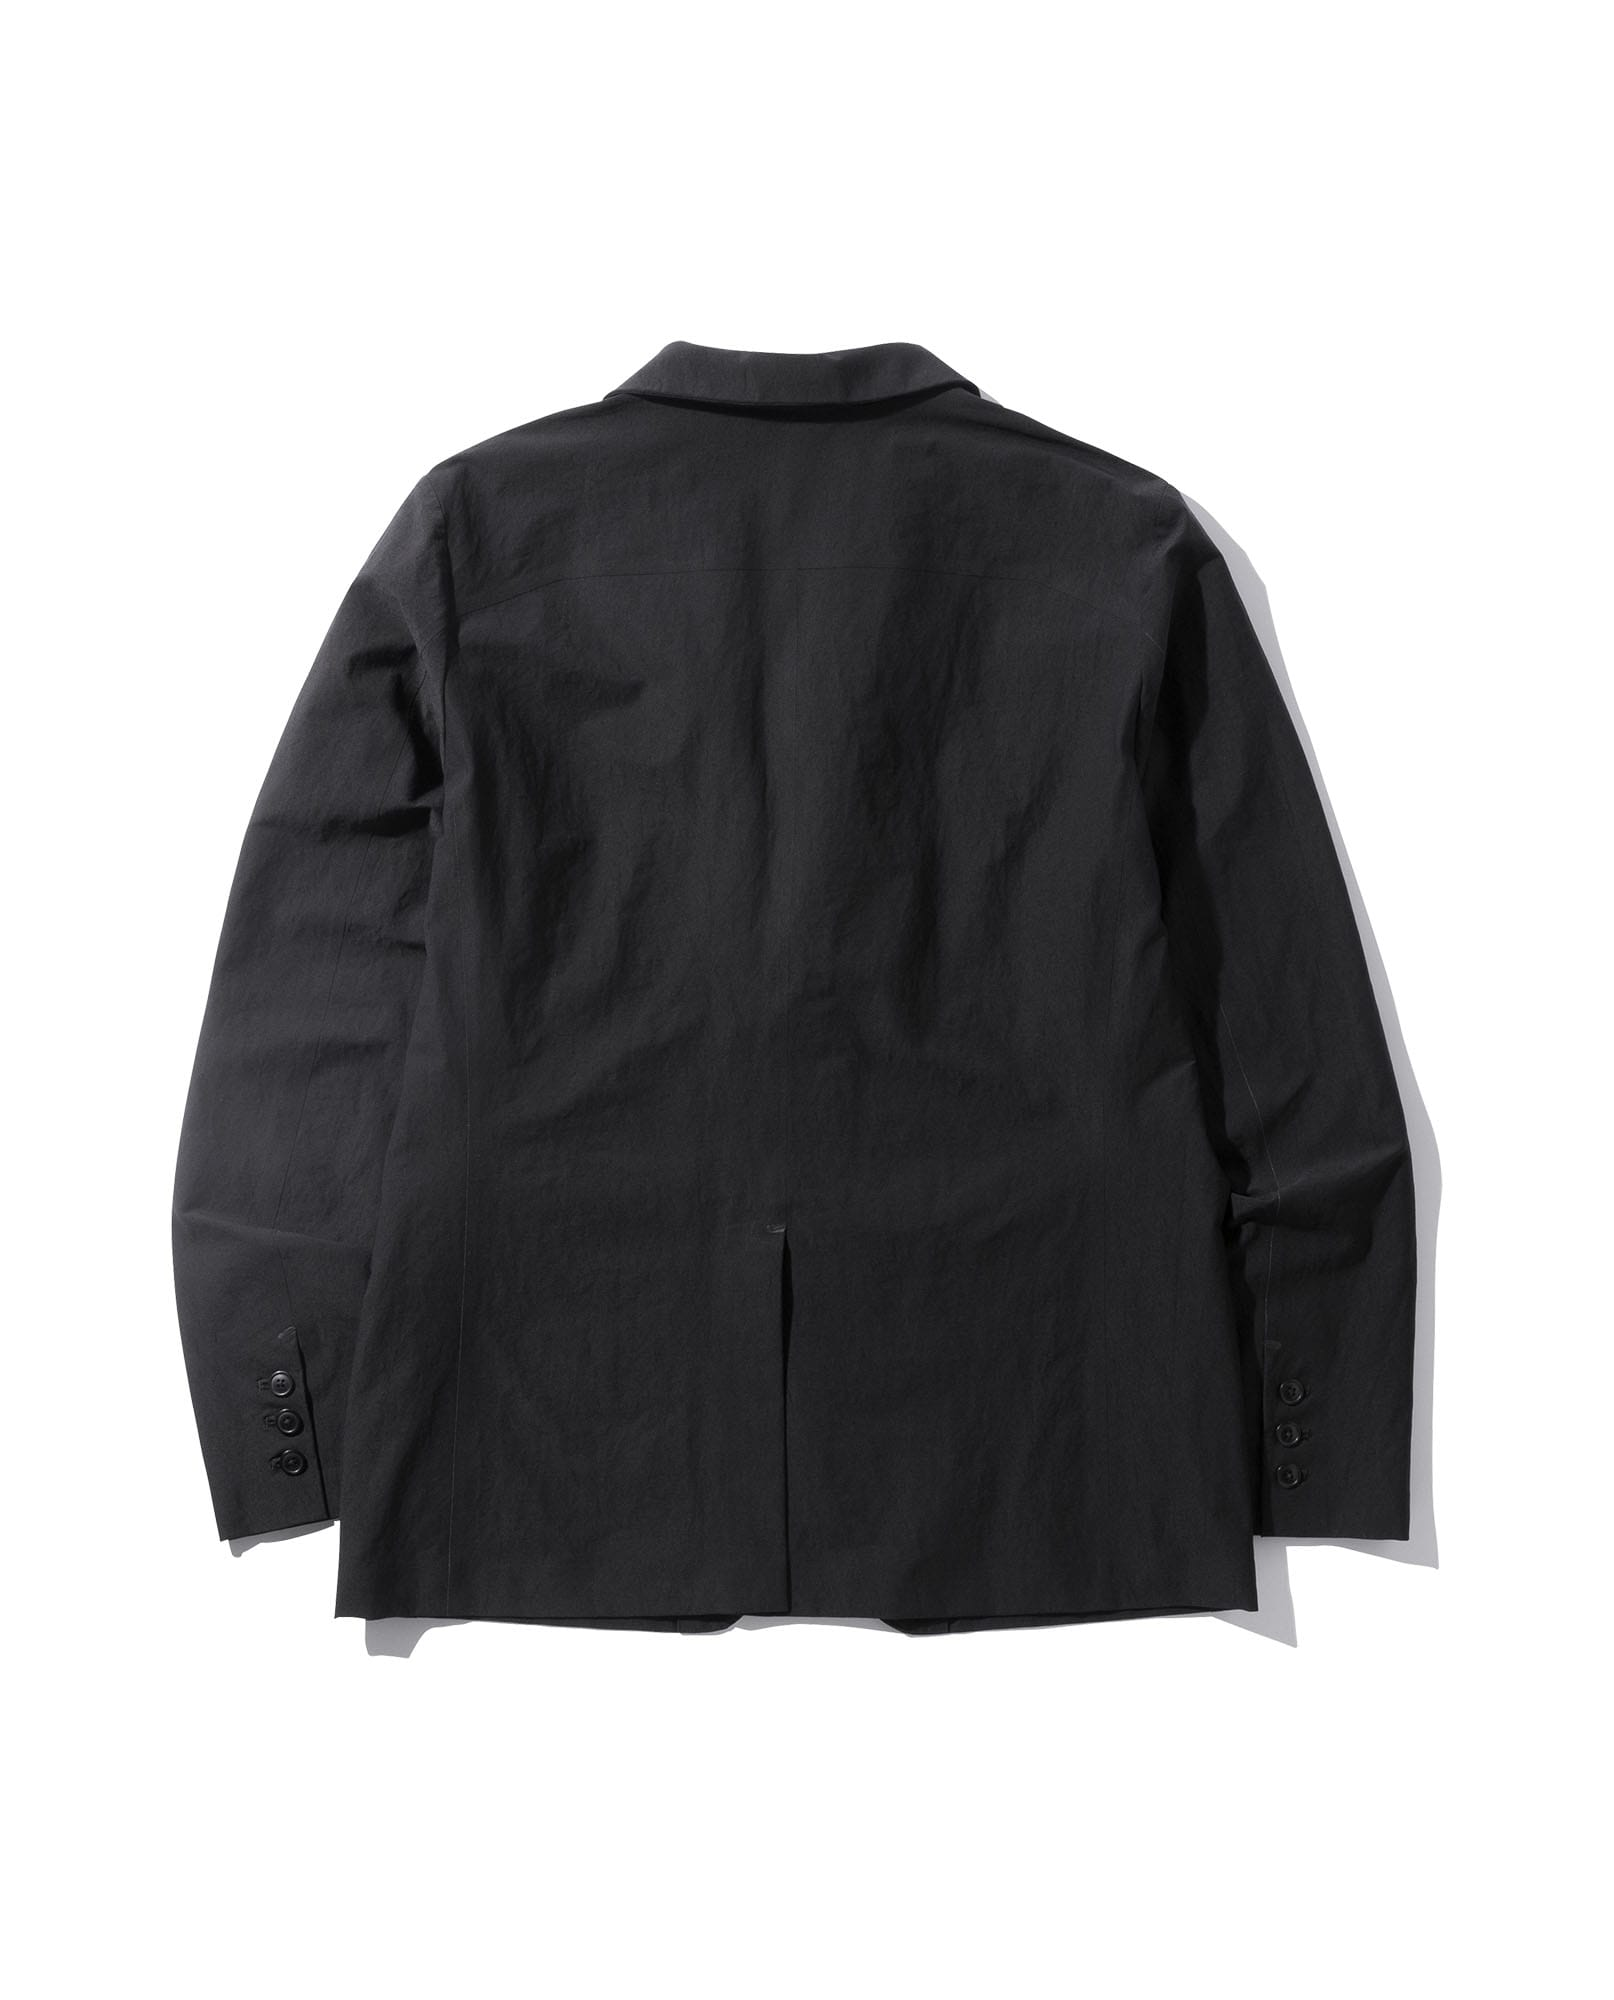 【NEW】TRAVELER JACKET